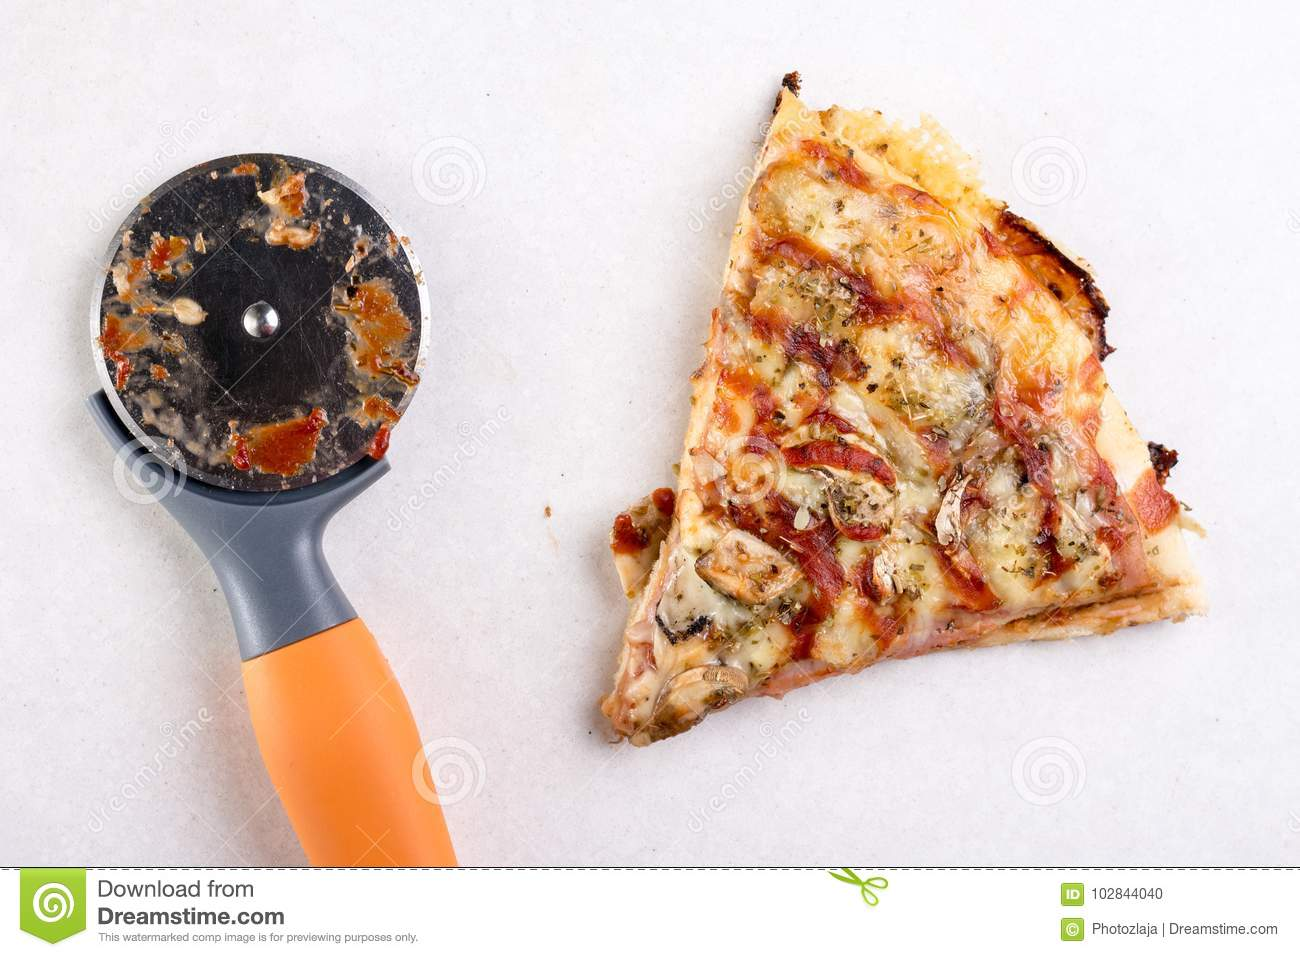 How Many Slices In Round Table Pizza.Pizza Slice With Round Pizza Knife On The White Marble Background